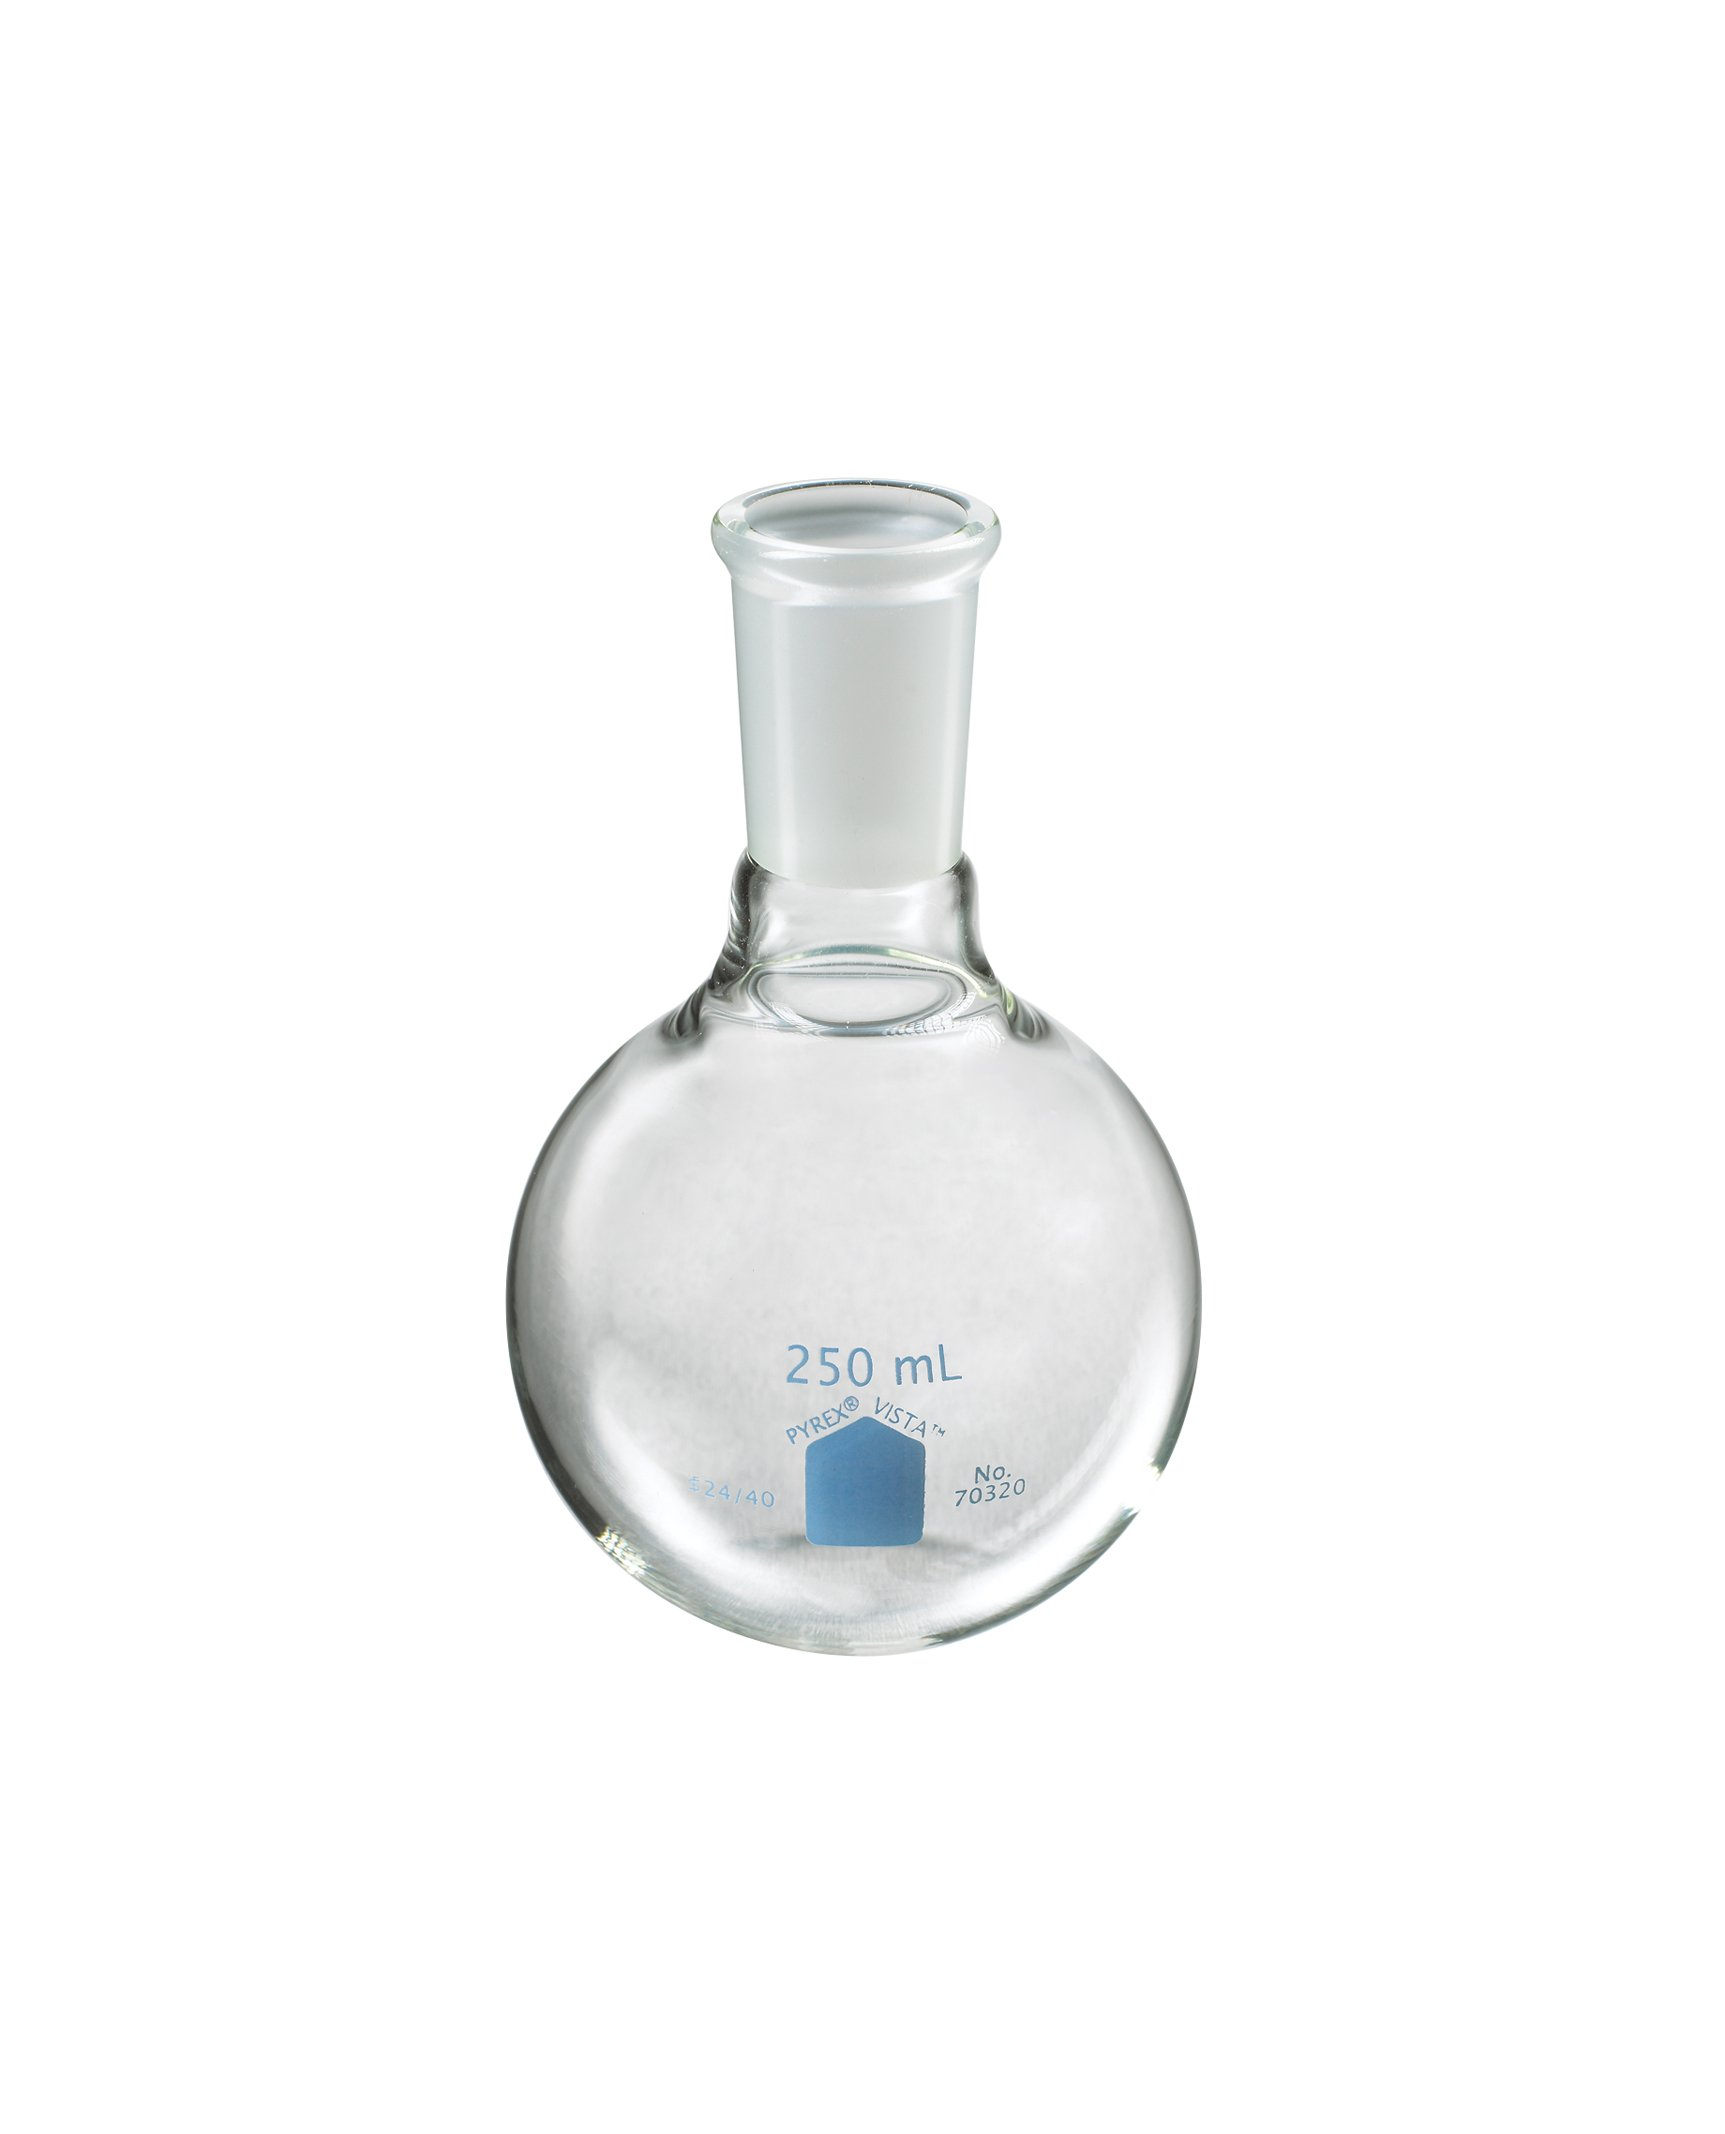 Corning Pyrex Vista Borosilicate Glass Short Neck Round Bottom Boiling Flasks with 24/40 Standard Taper Joint, 250ml Capacity (Case of 4)